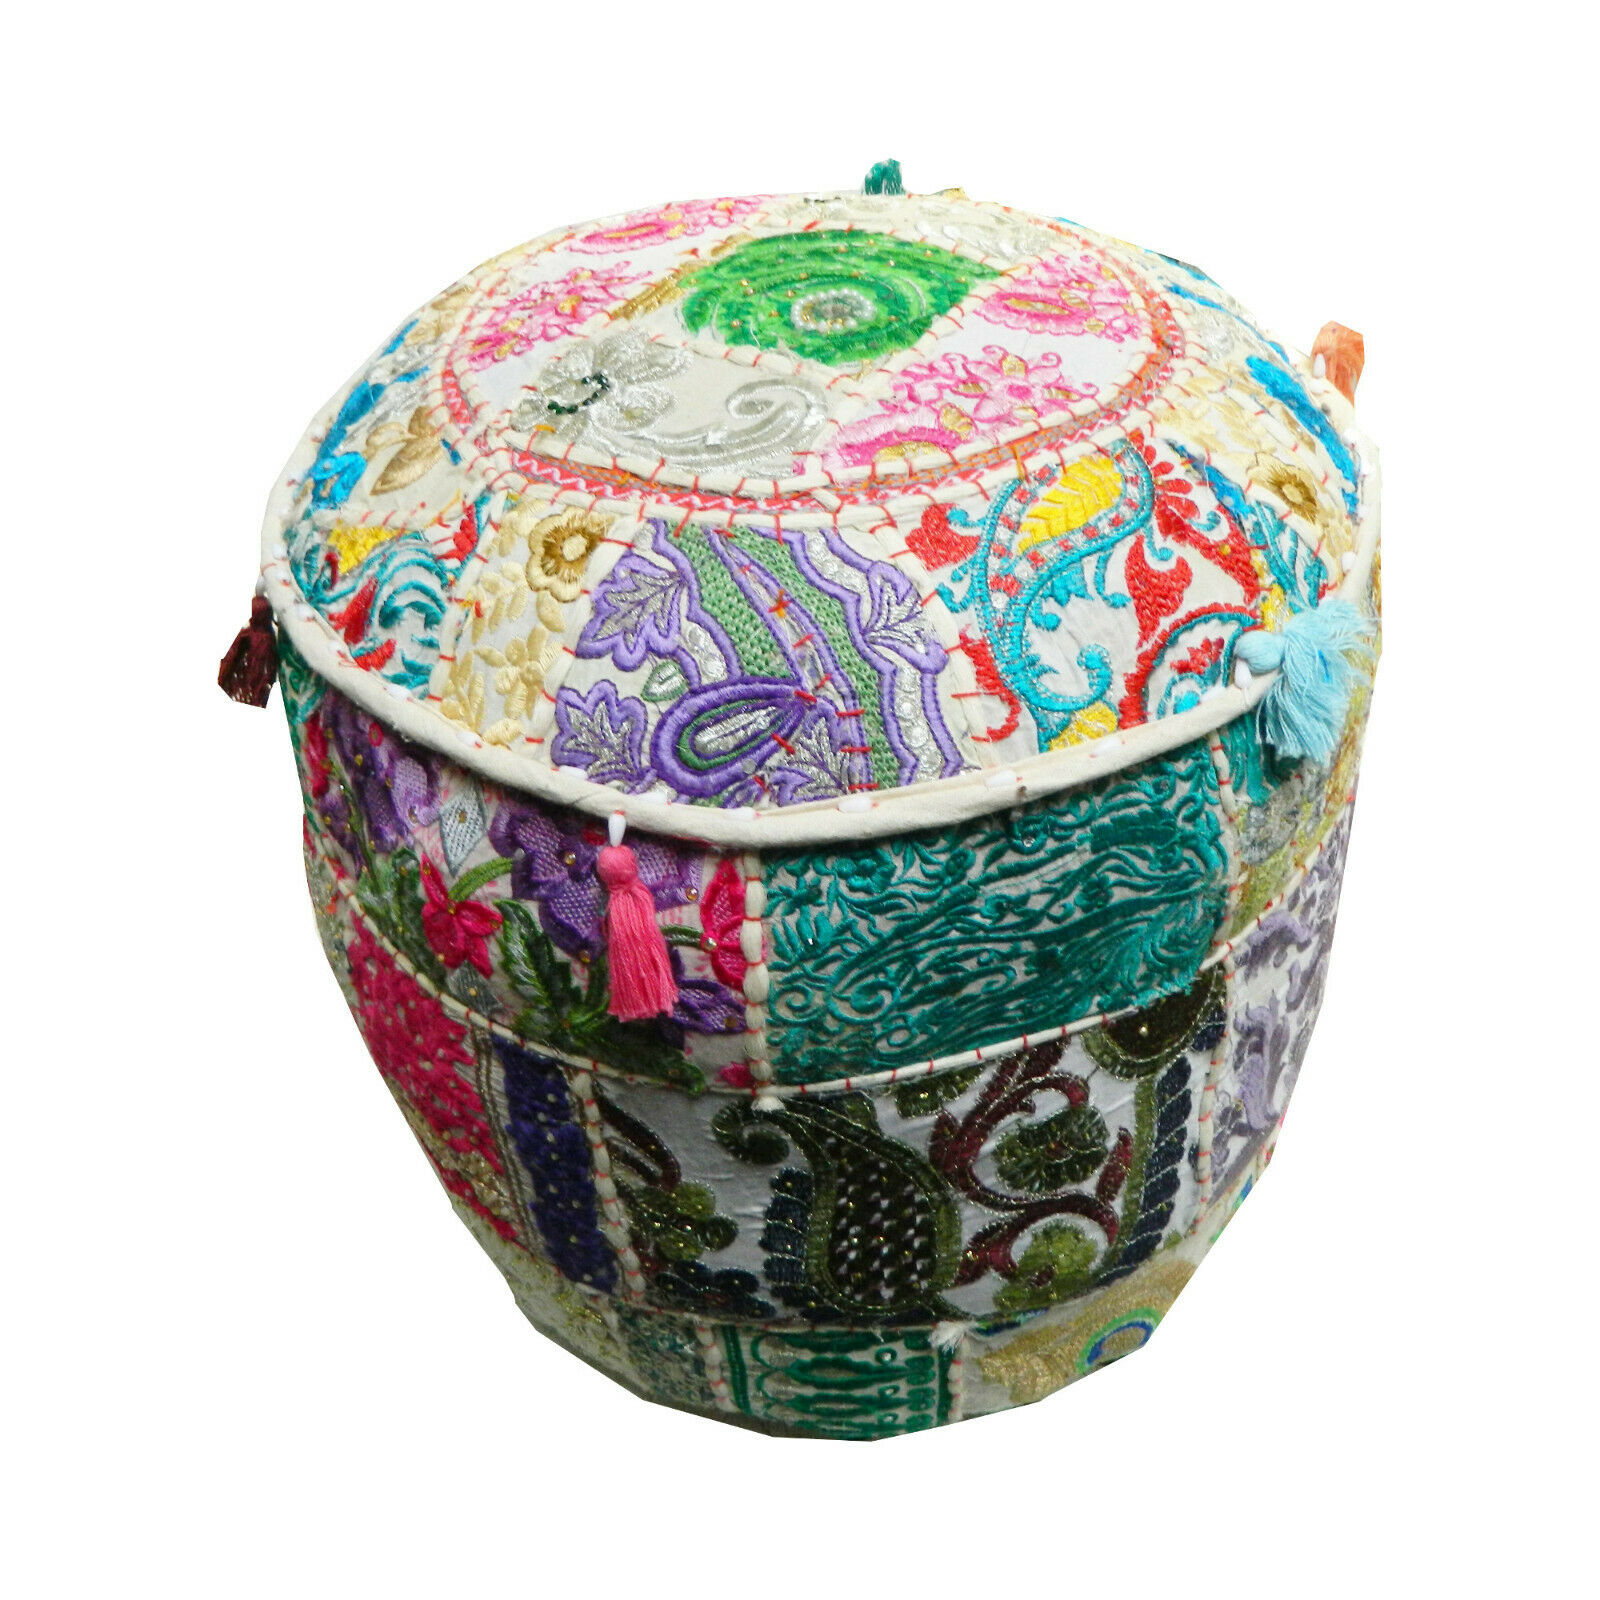 Indian Stool Round Floor Cushion Cotton Patchwork Rattan Seat Basket For Sale